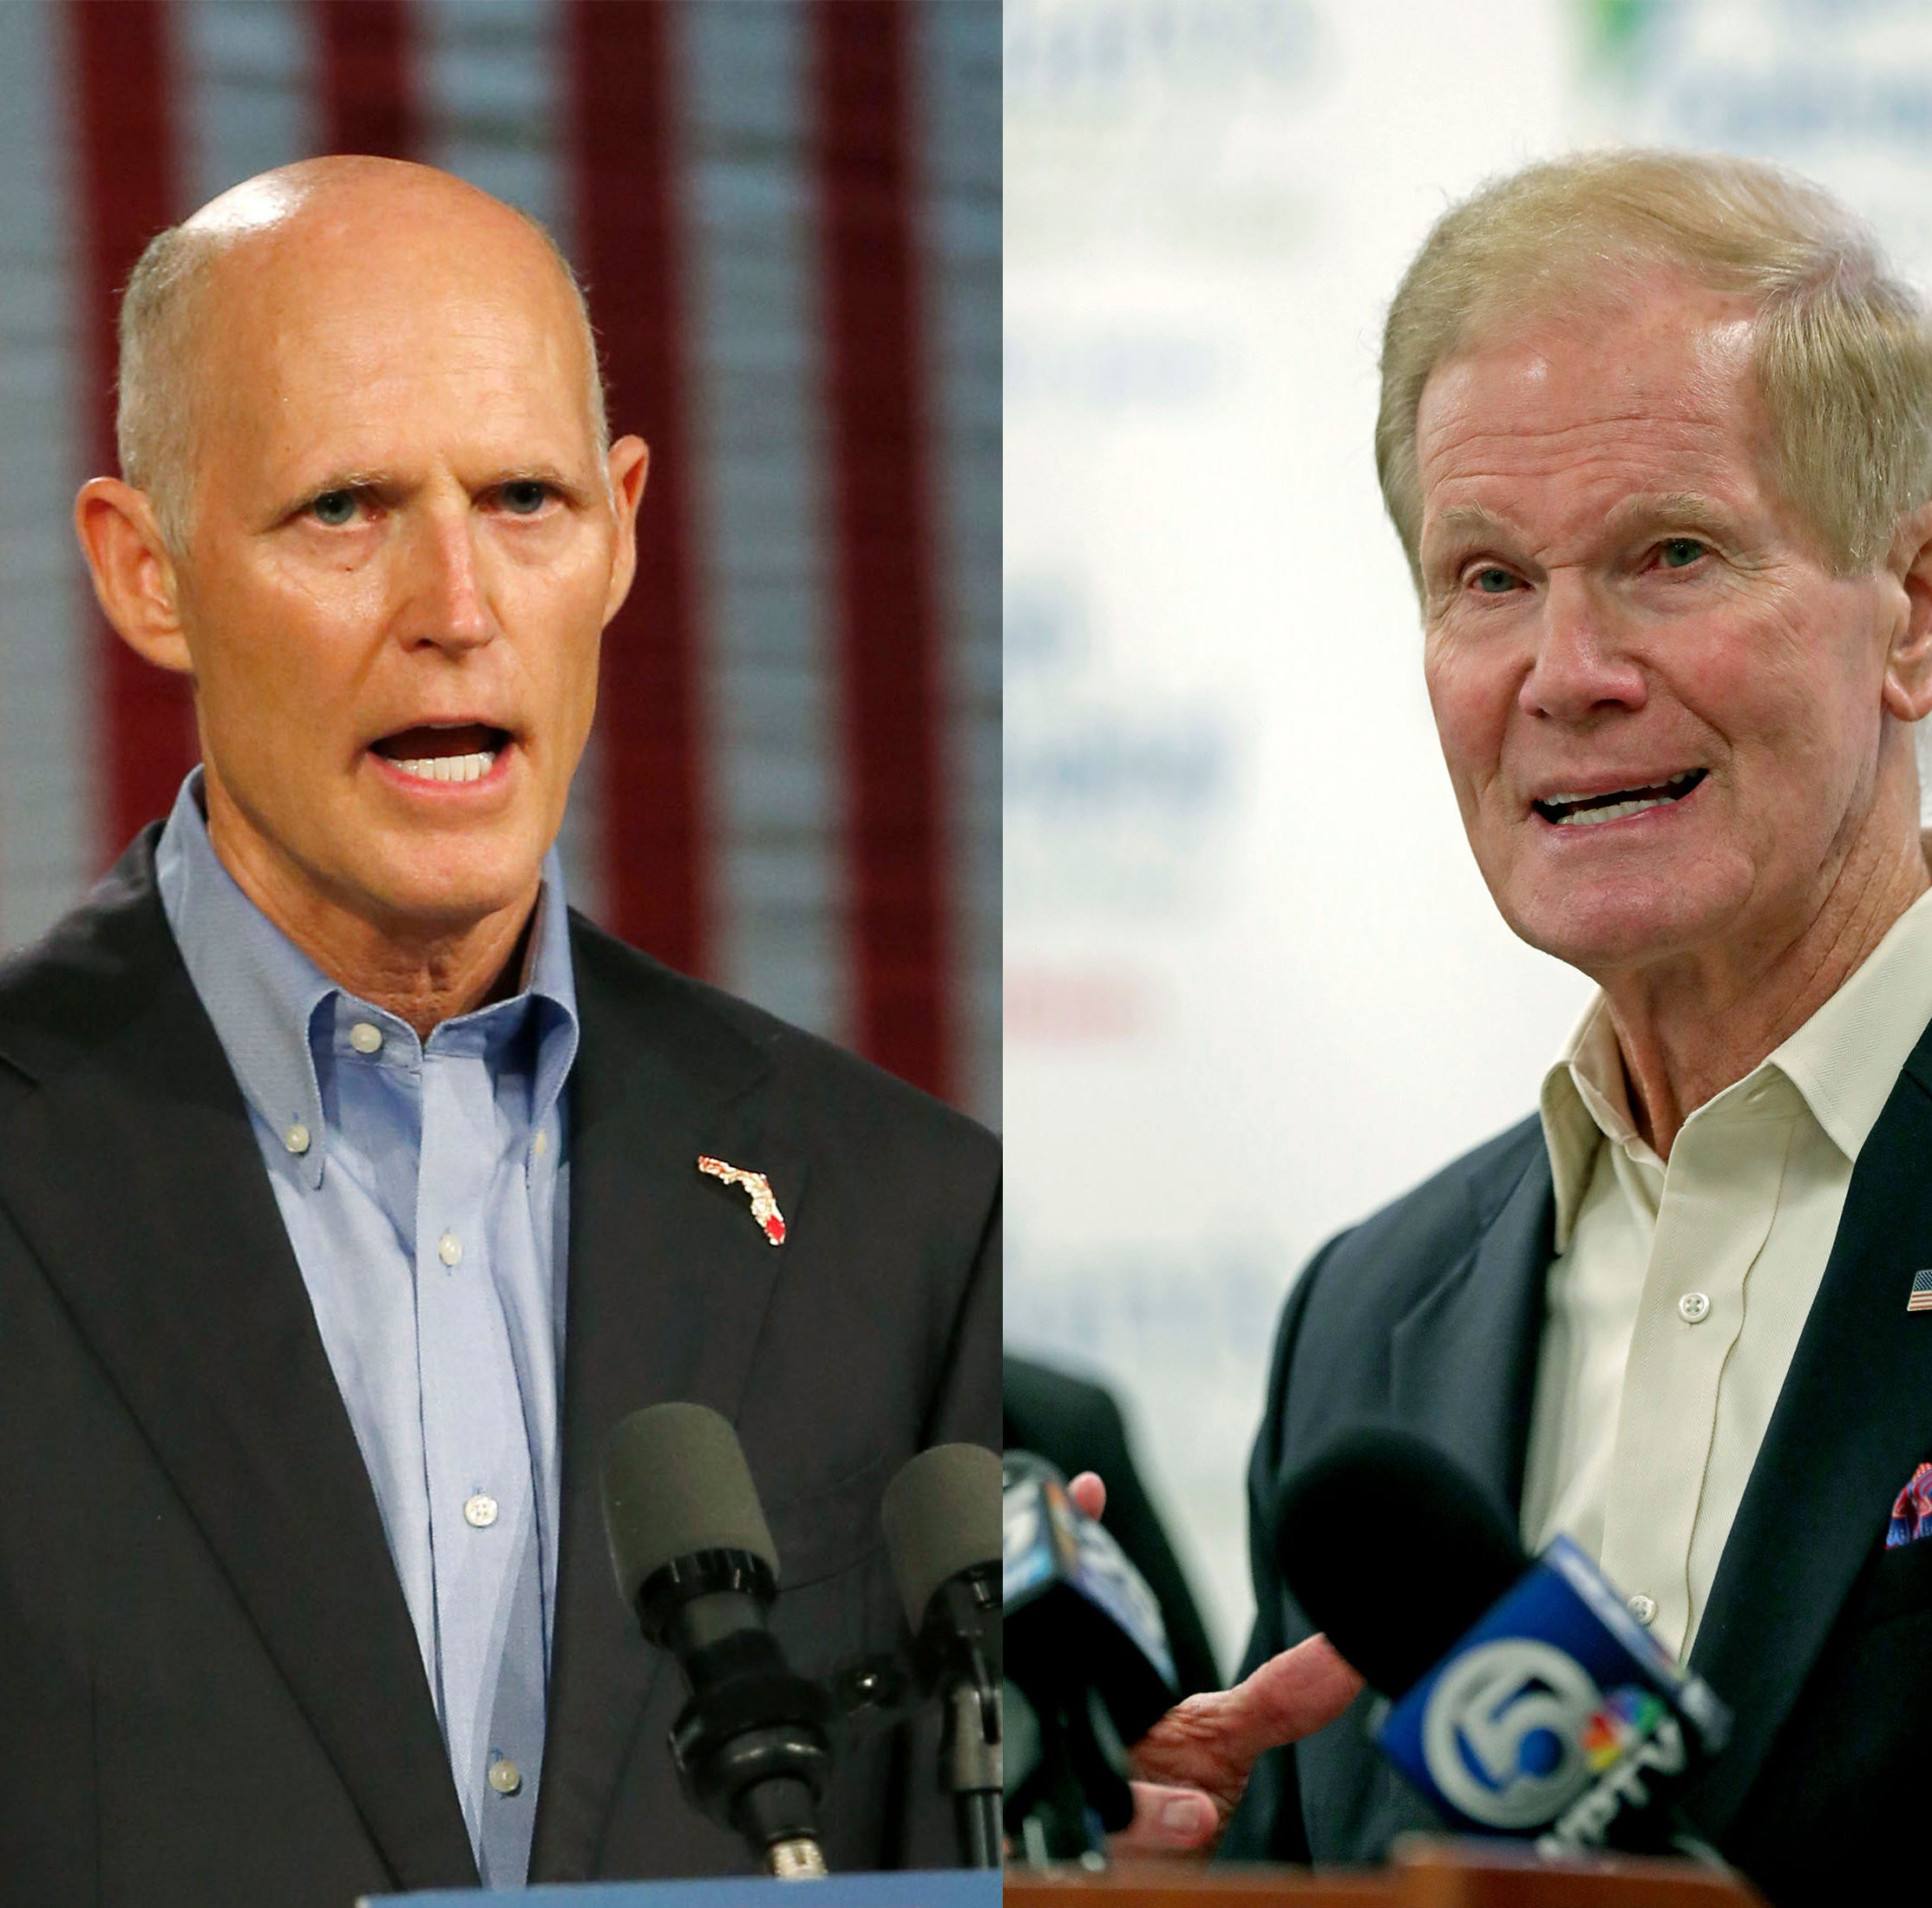 Quinnipiac poll: Rick Scott trails Bill Nelson in U.S. Senate race by 7 points